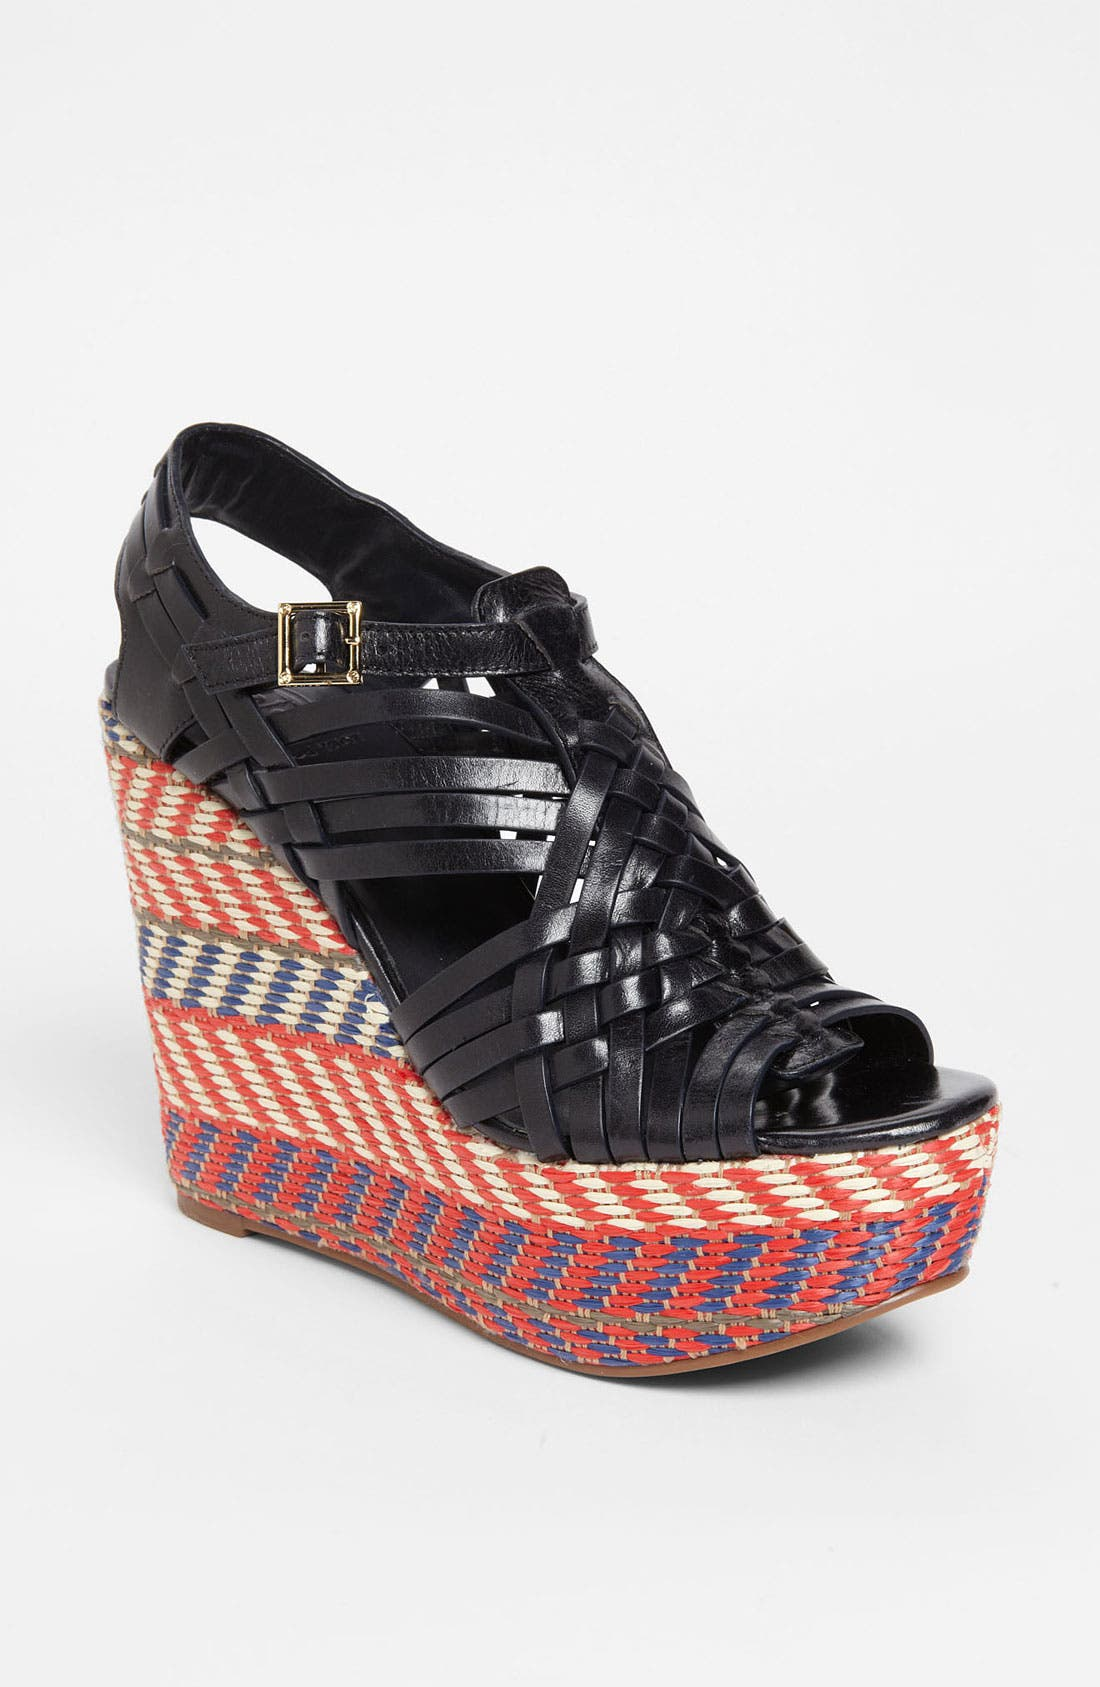 Alternate Image 1 Selected - Tory Burch 'Raven' Wedge